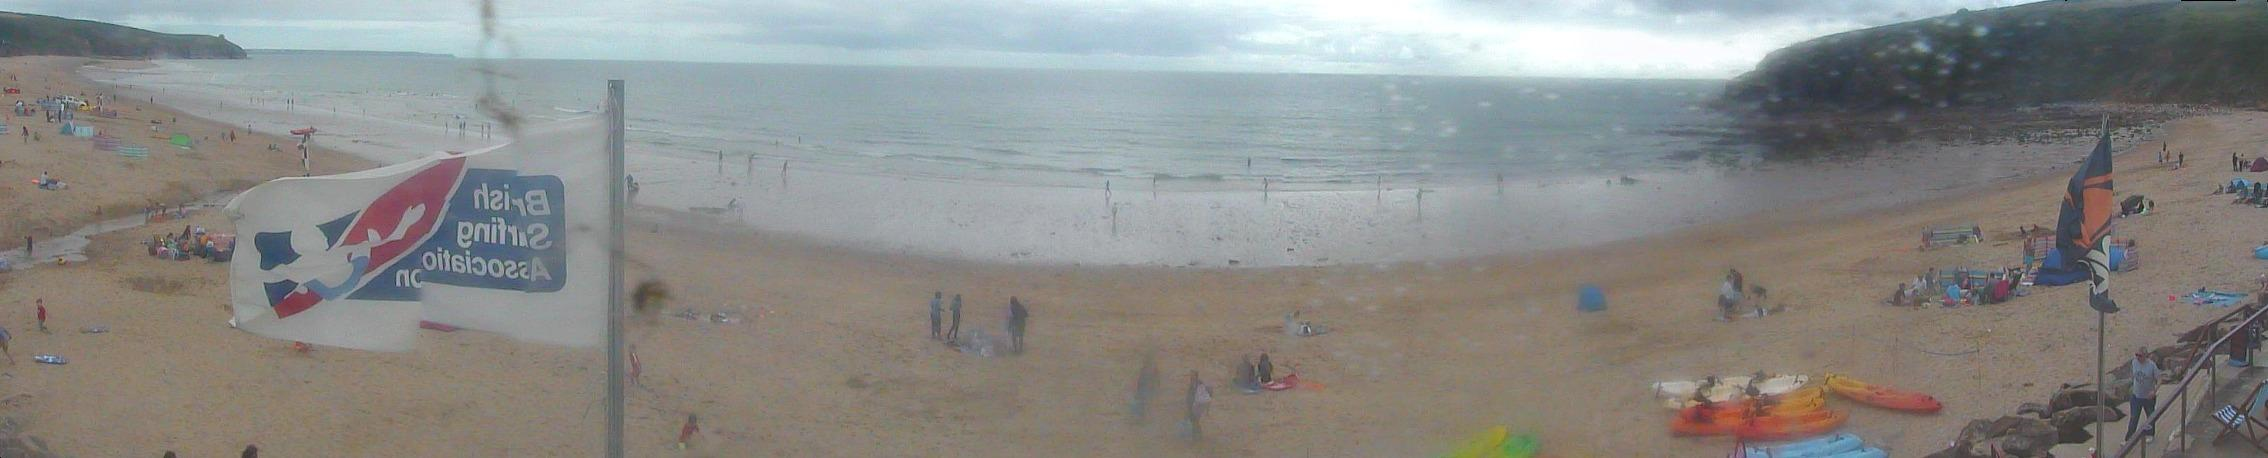 Webcam mais recente para Praa Sands